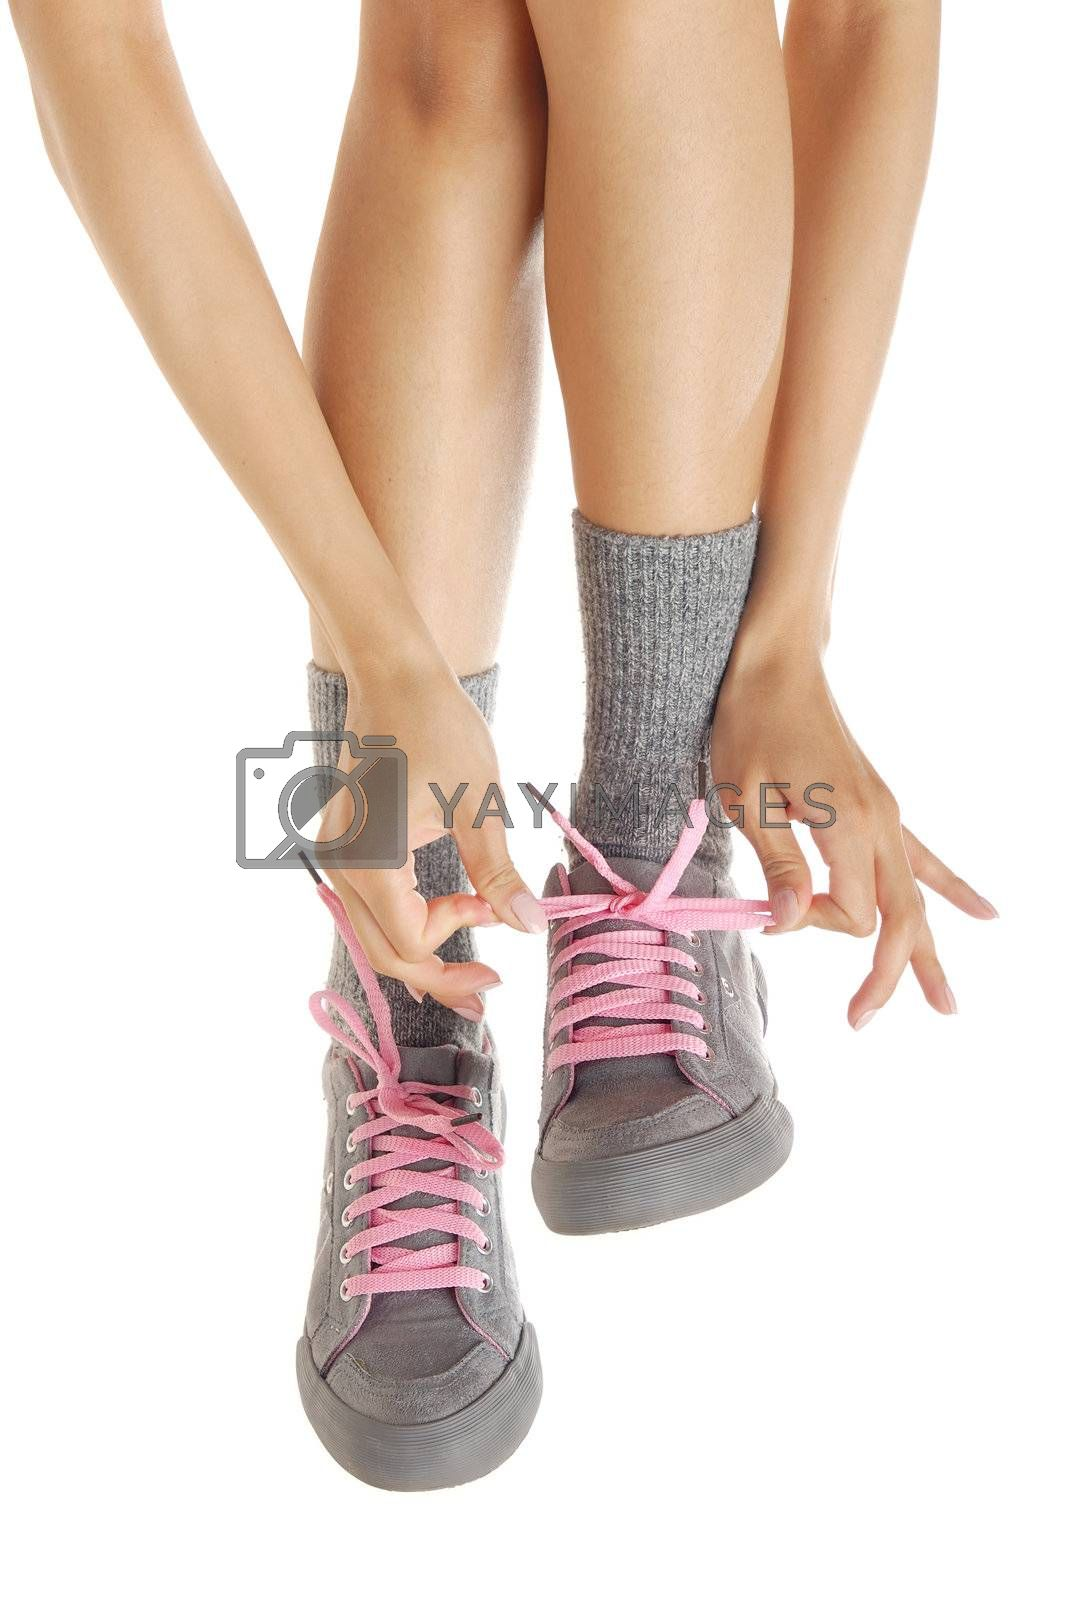 Woman legs in sport-boots and hands fastening laces